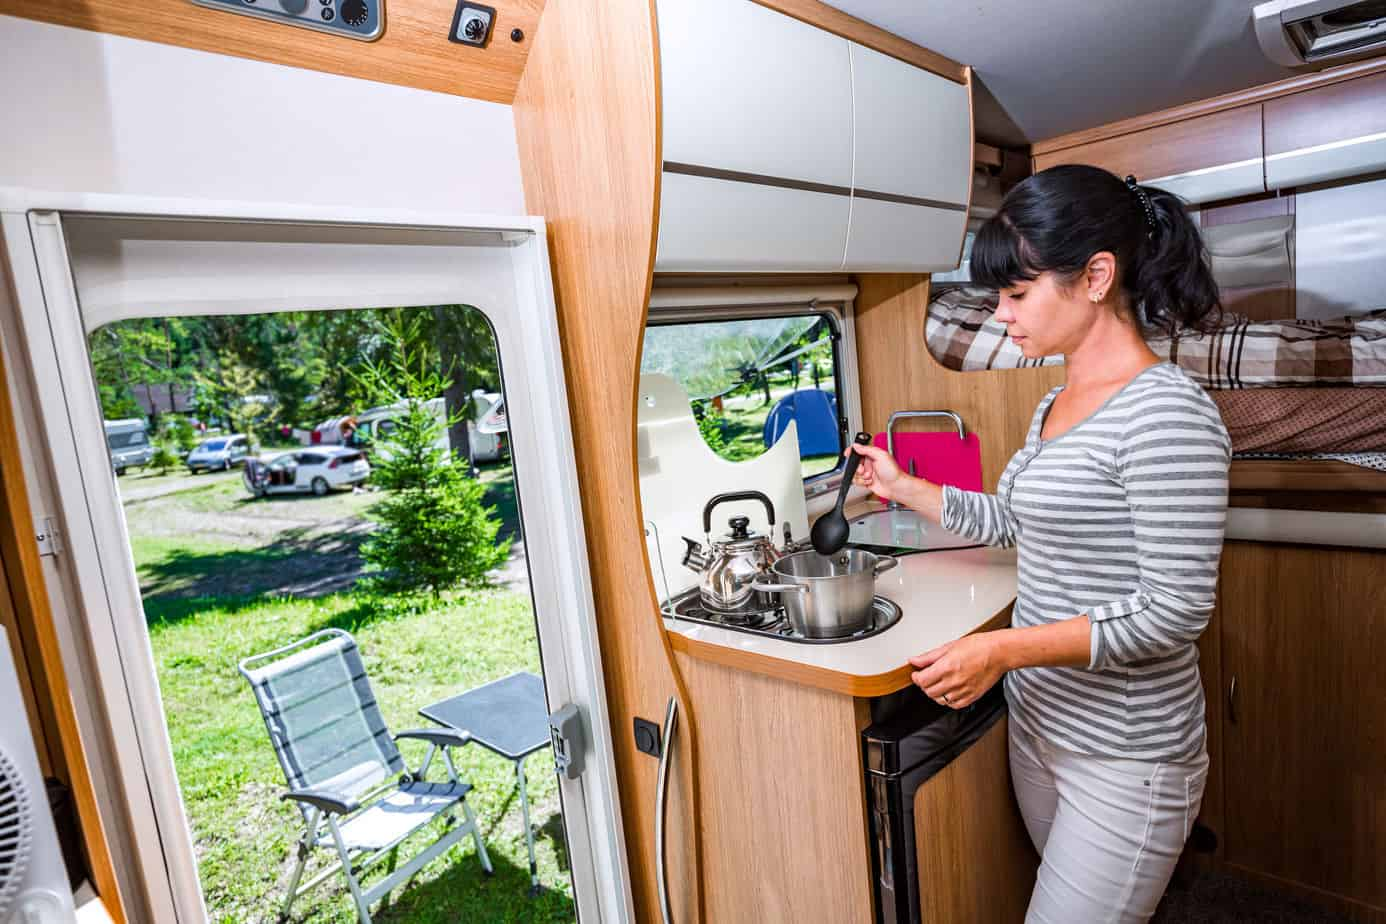 Eatin' Good: 10 Tiny Trailers with Pull-out Kitchens